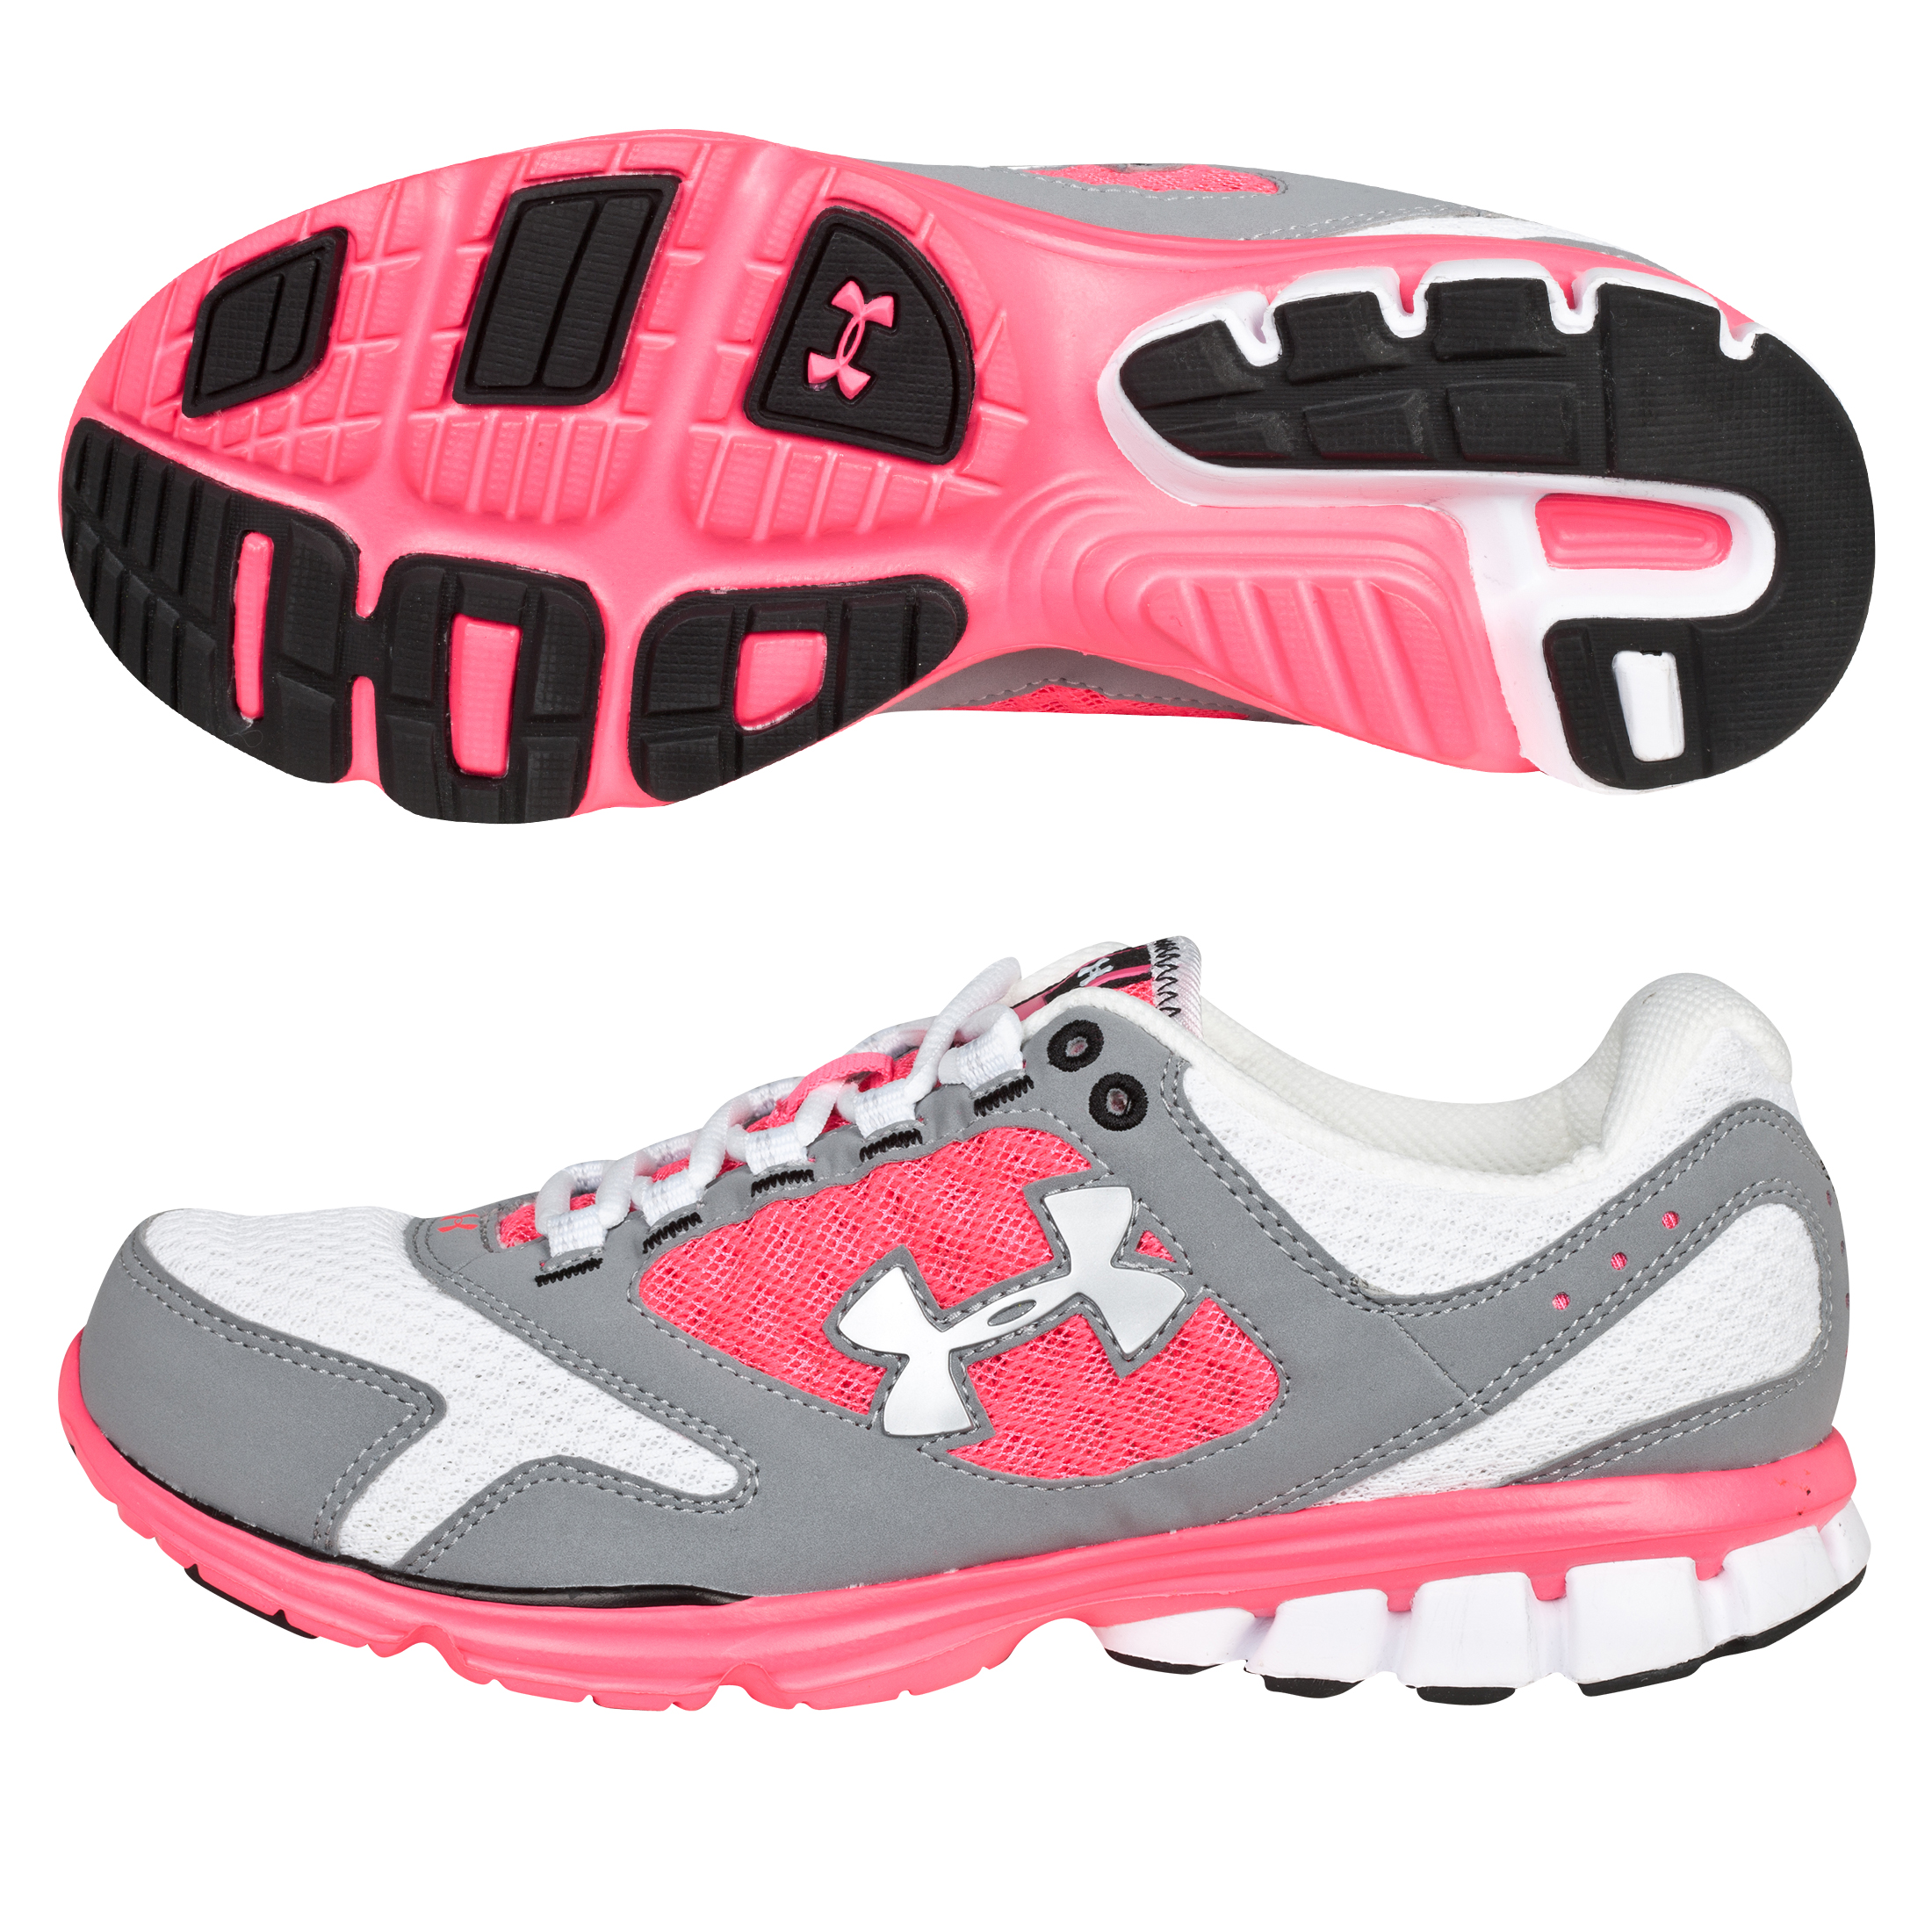 Under Armour Women?s Assert II Trainer - White/Pink